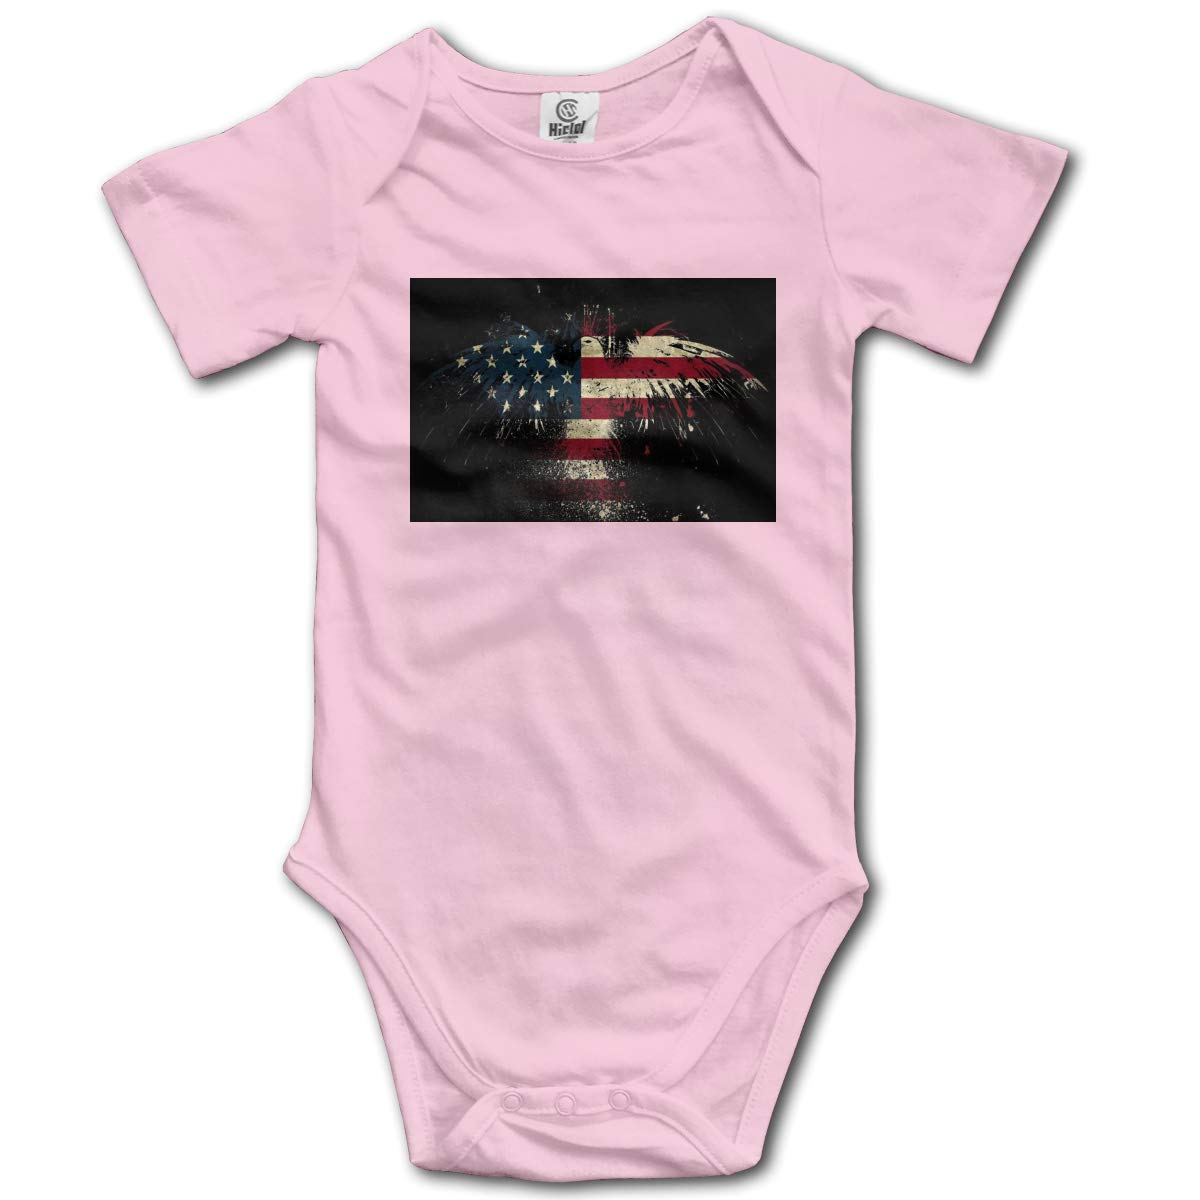 Baby Short-Sleeve Onesies Eagle American Flag Bodysuit Baby Outfits